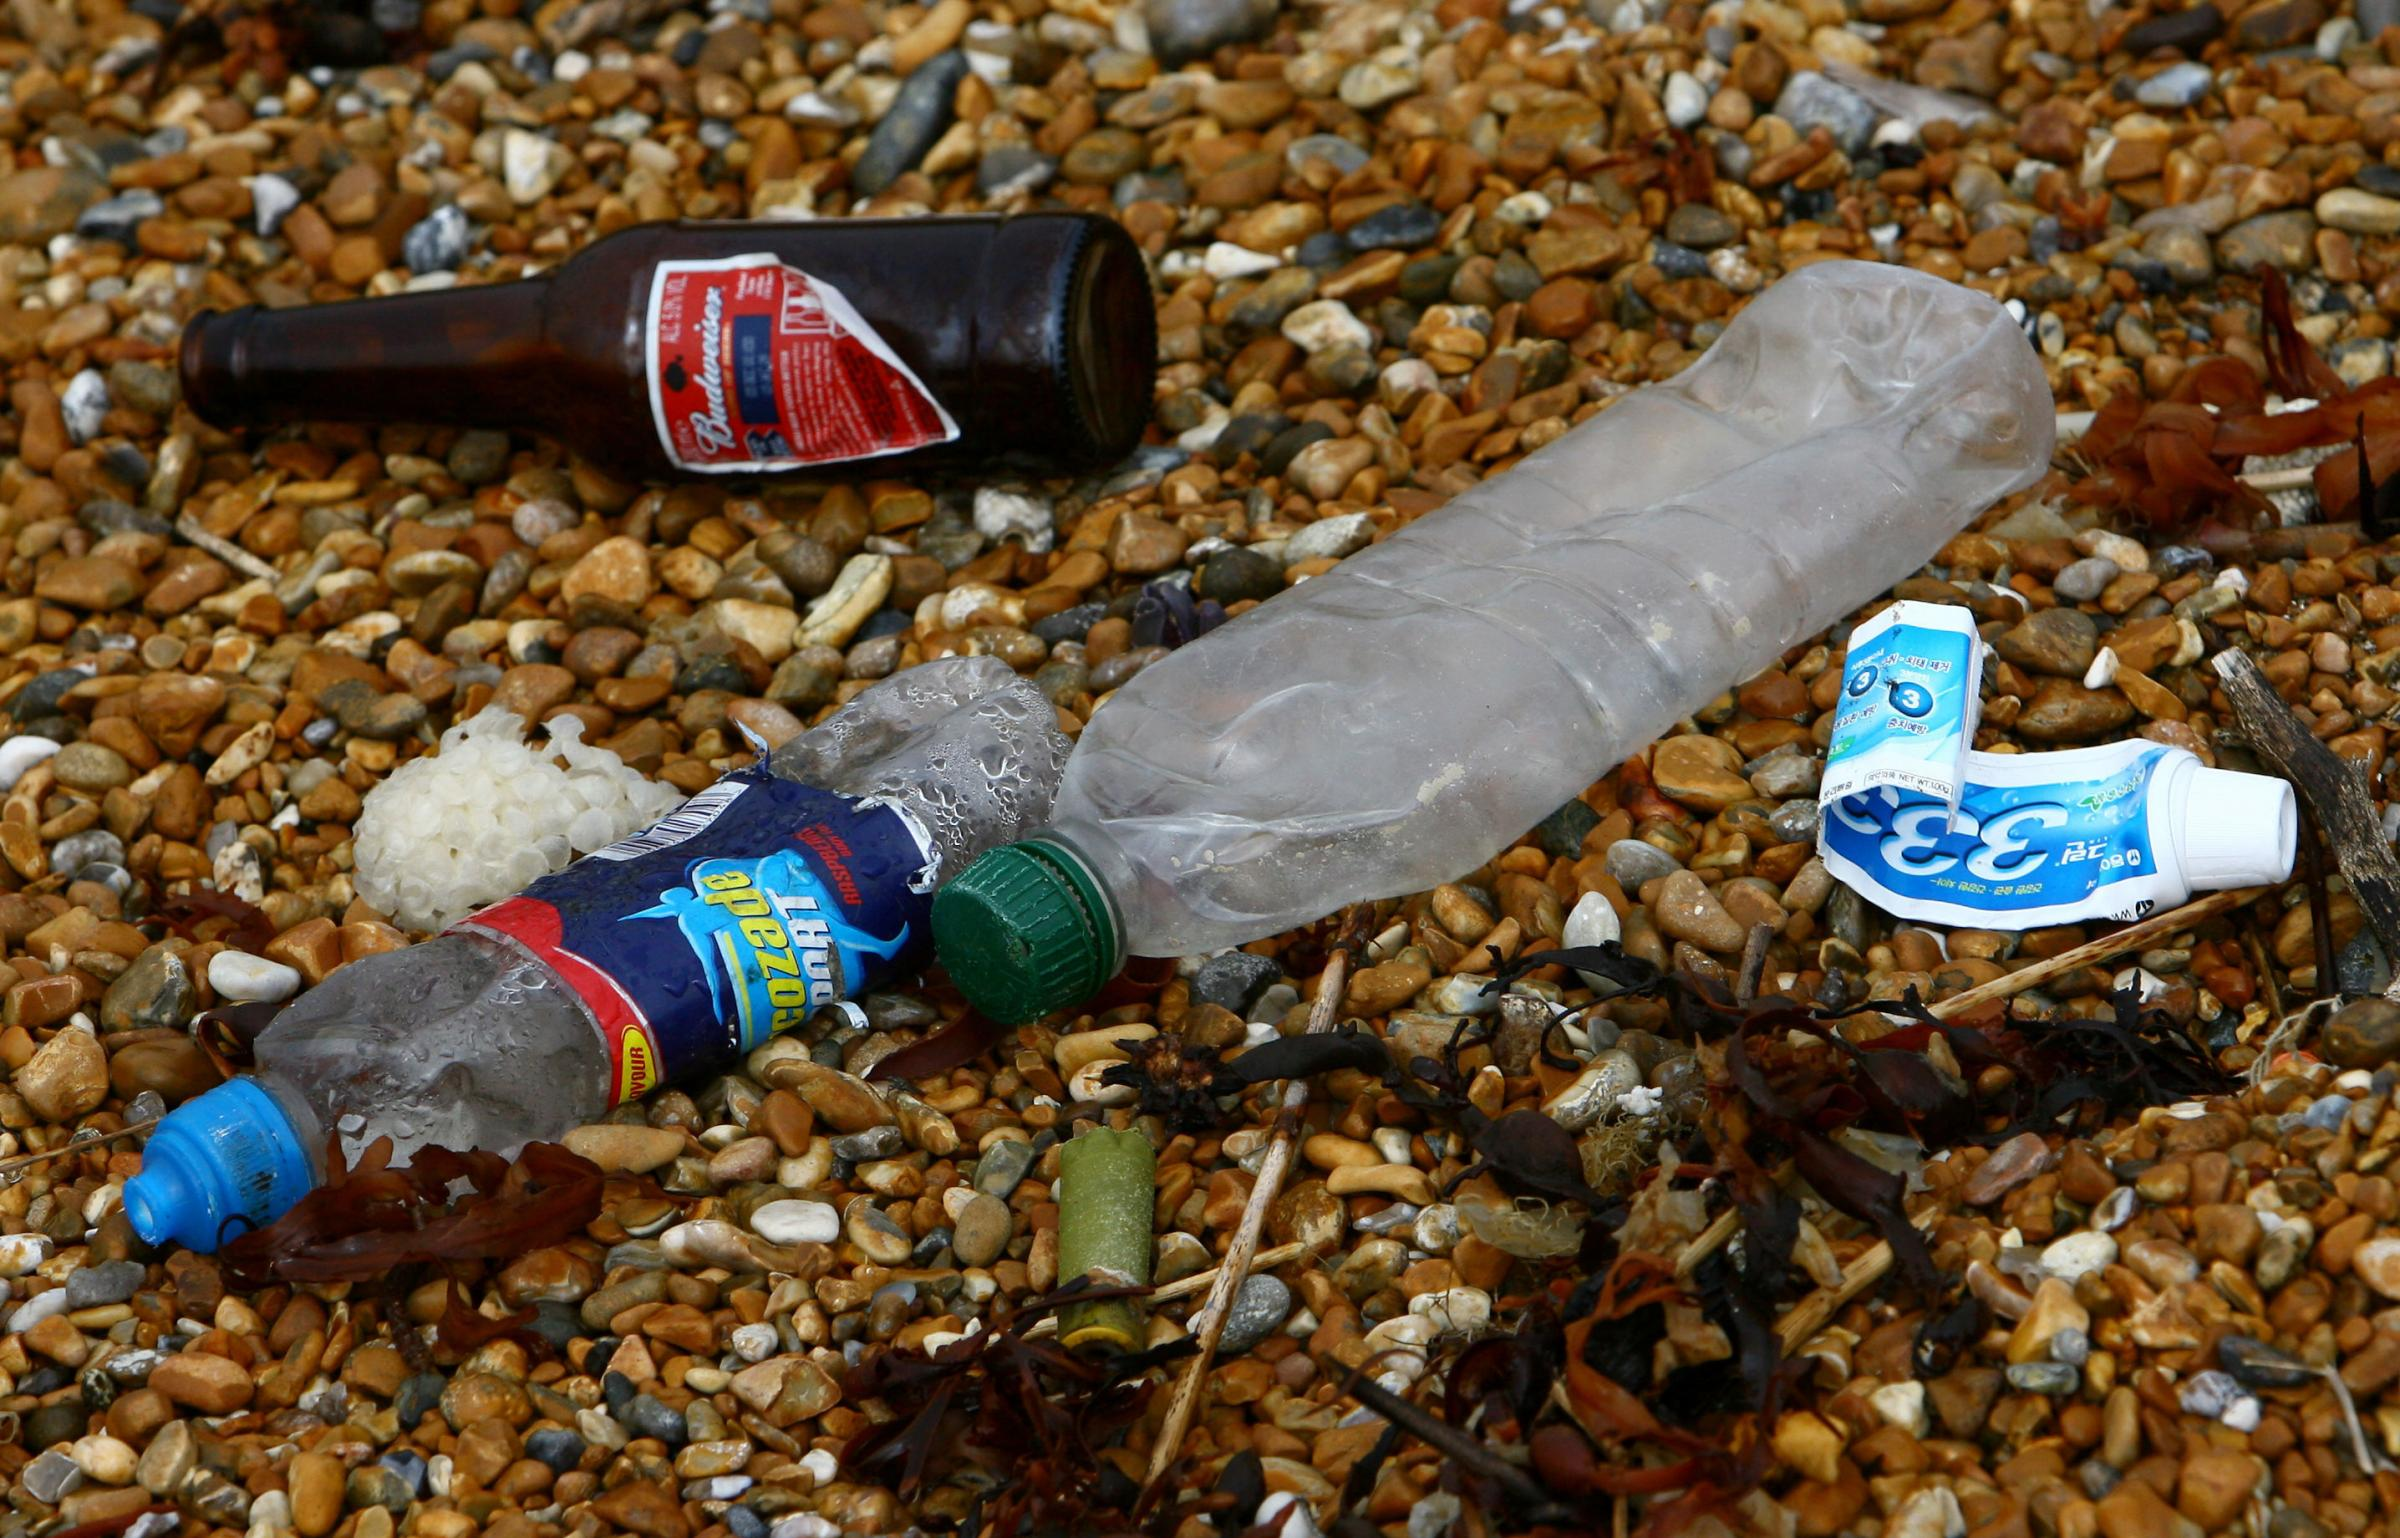 File photo dated 08/04/09 of rubbish left on a beach, as members of the public are being urged to help with efforts to clean Britain's beaches of plastic waste and other litter, from the comfort of their sofas. PRESS ASSOCIATION Photo. Issue date: Fri